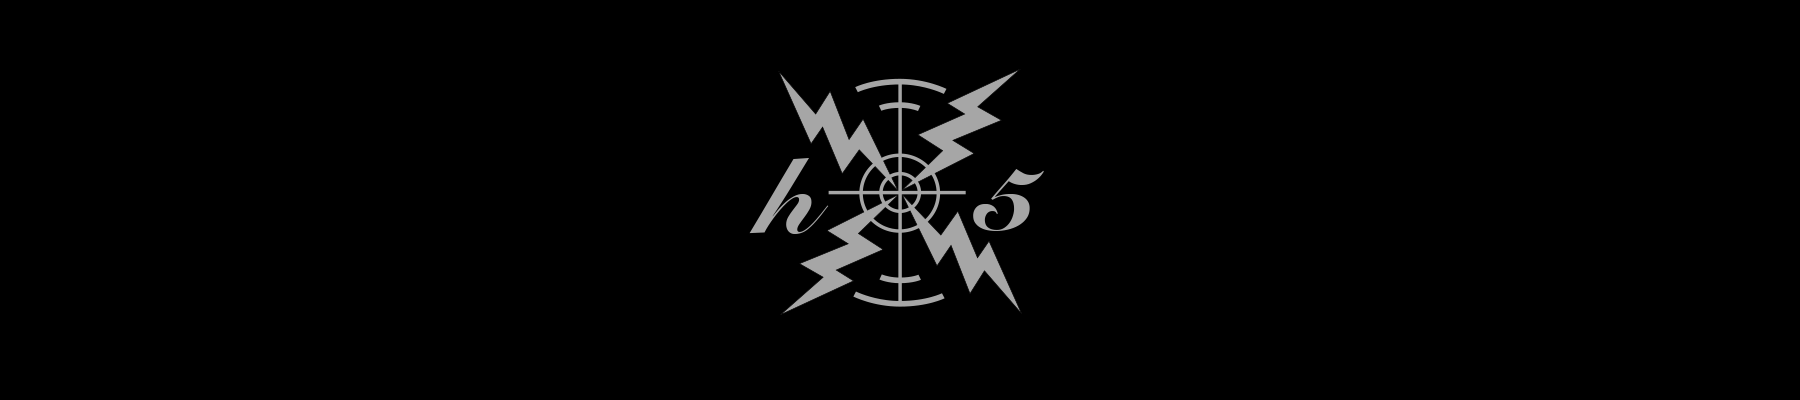 hypno5ive: Industrial, EBM, Darkwave, Gothic, Noise, Alternative and Electronic Music News and Reviews.